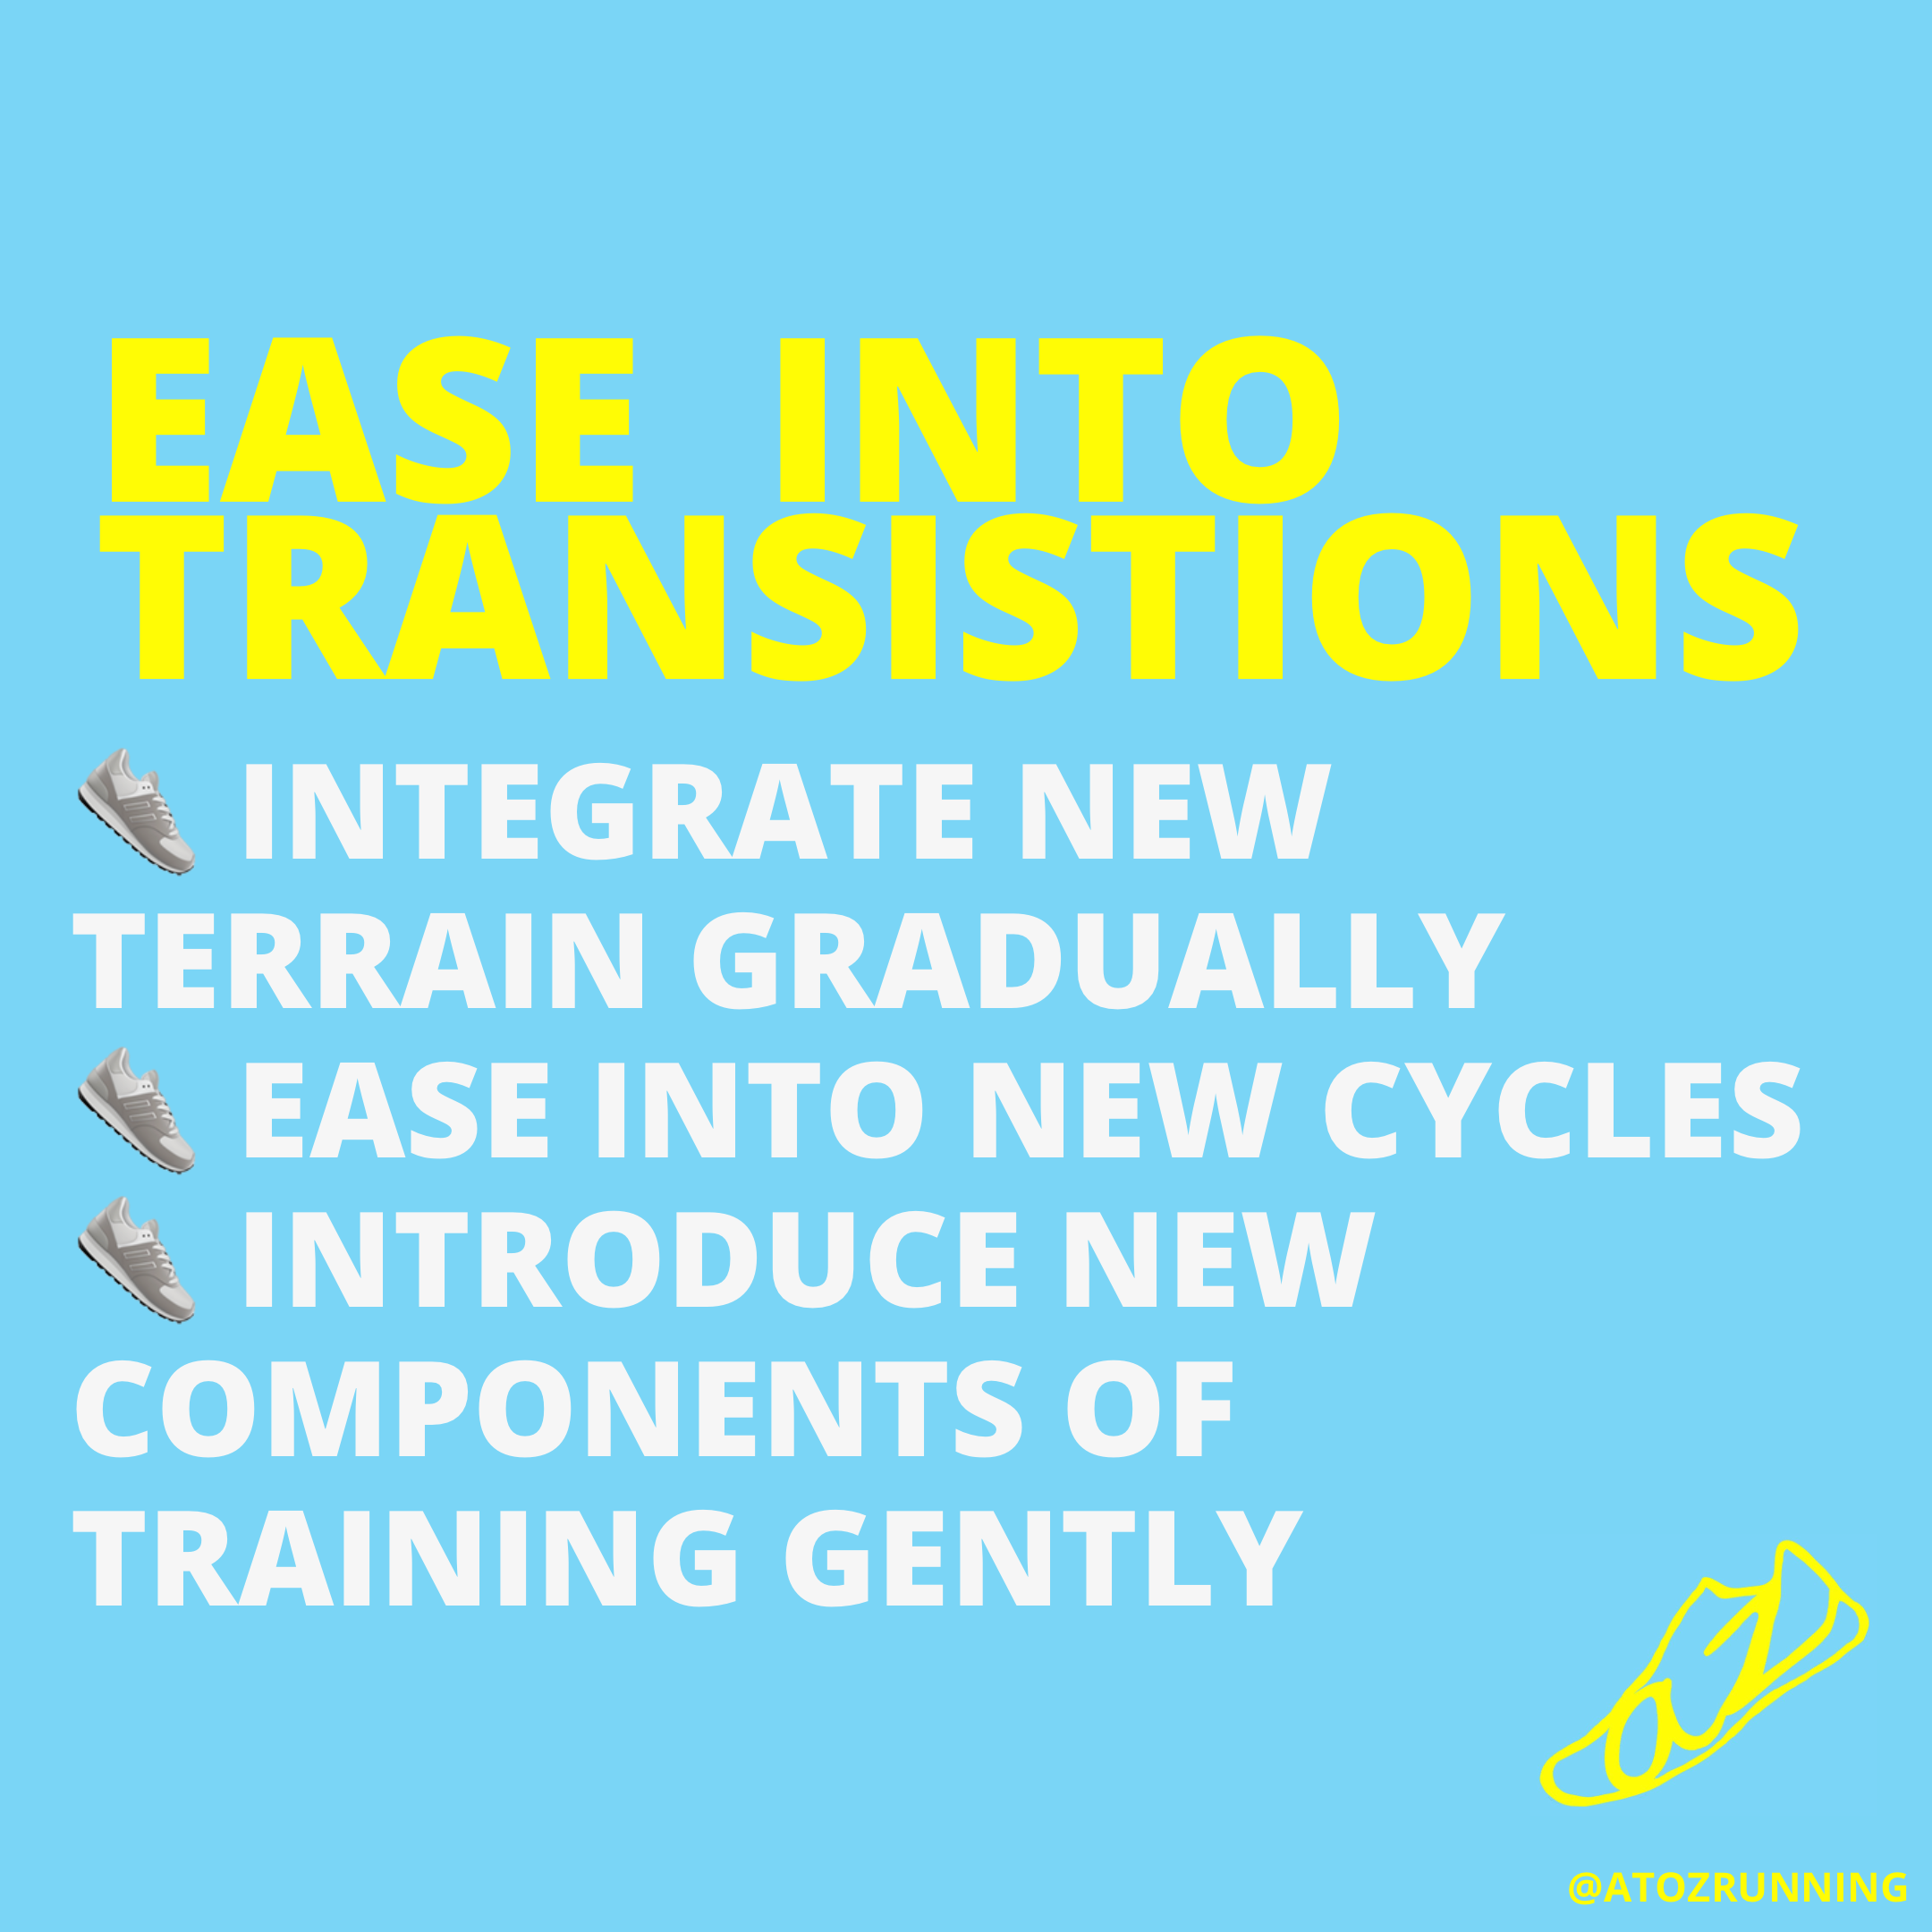 Ease into transitions